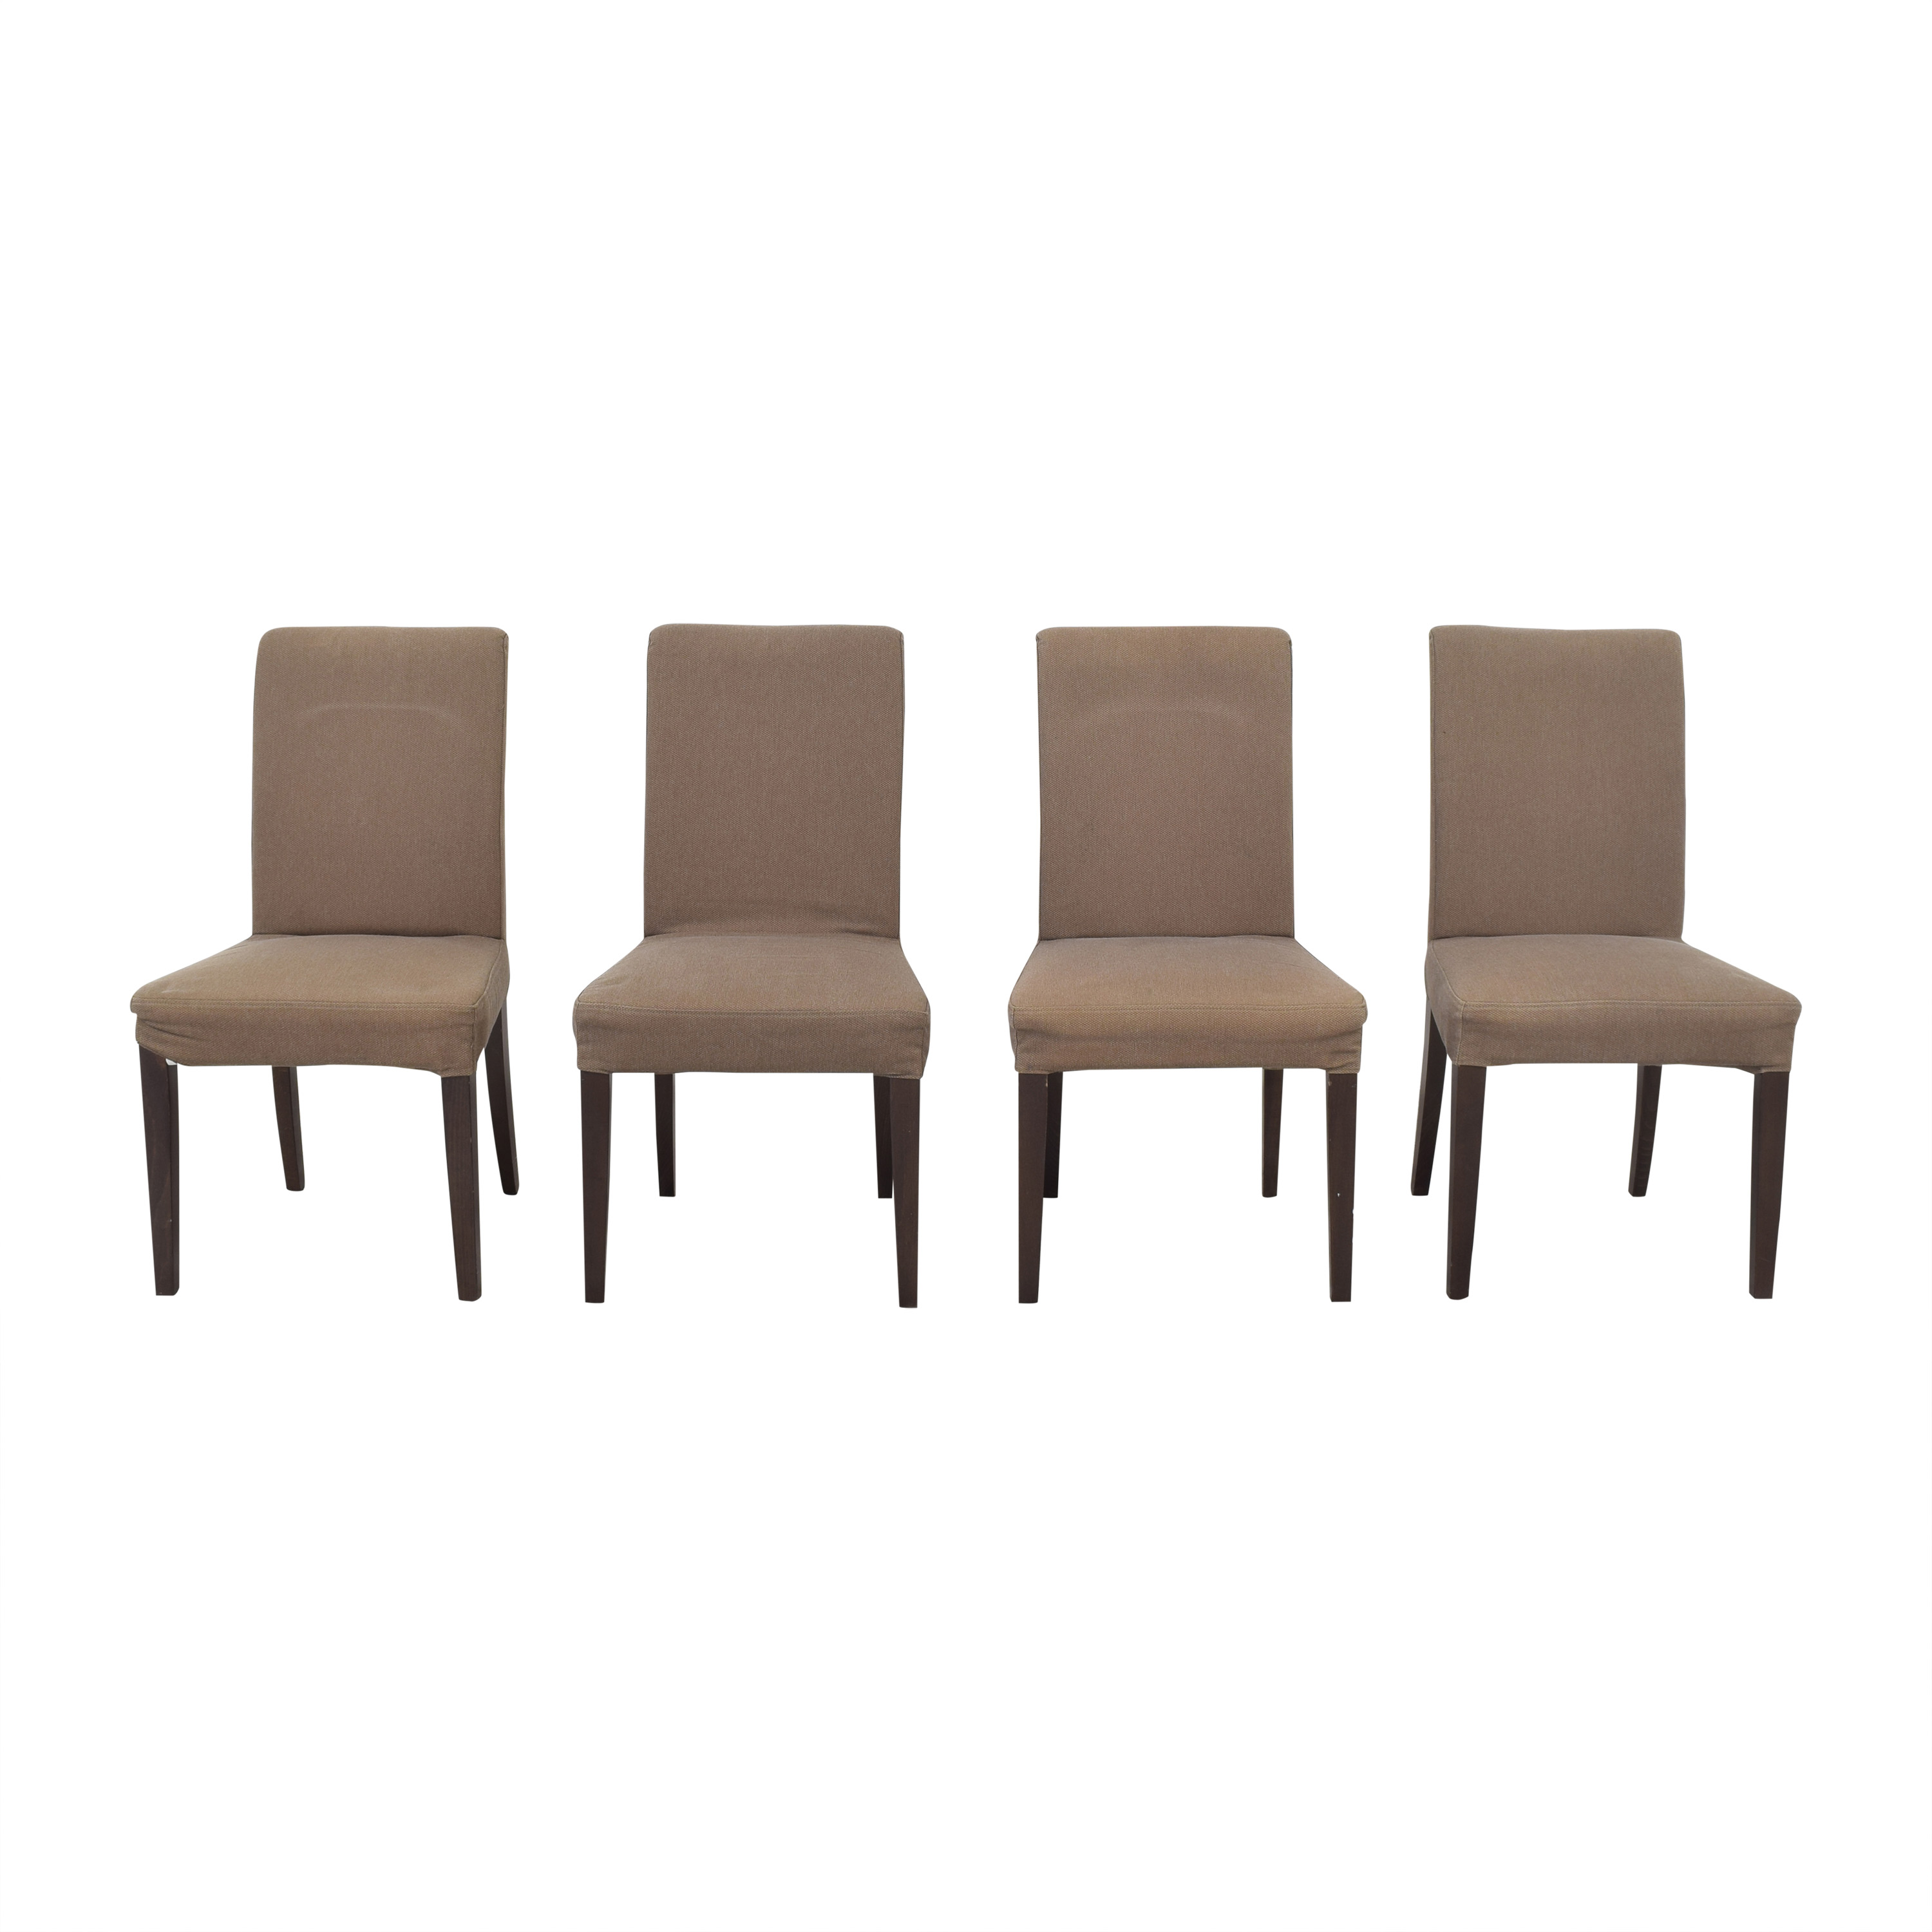 IKEA IKEA Henriksdal Dining Chair for sale